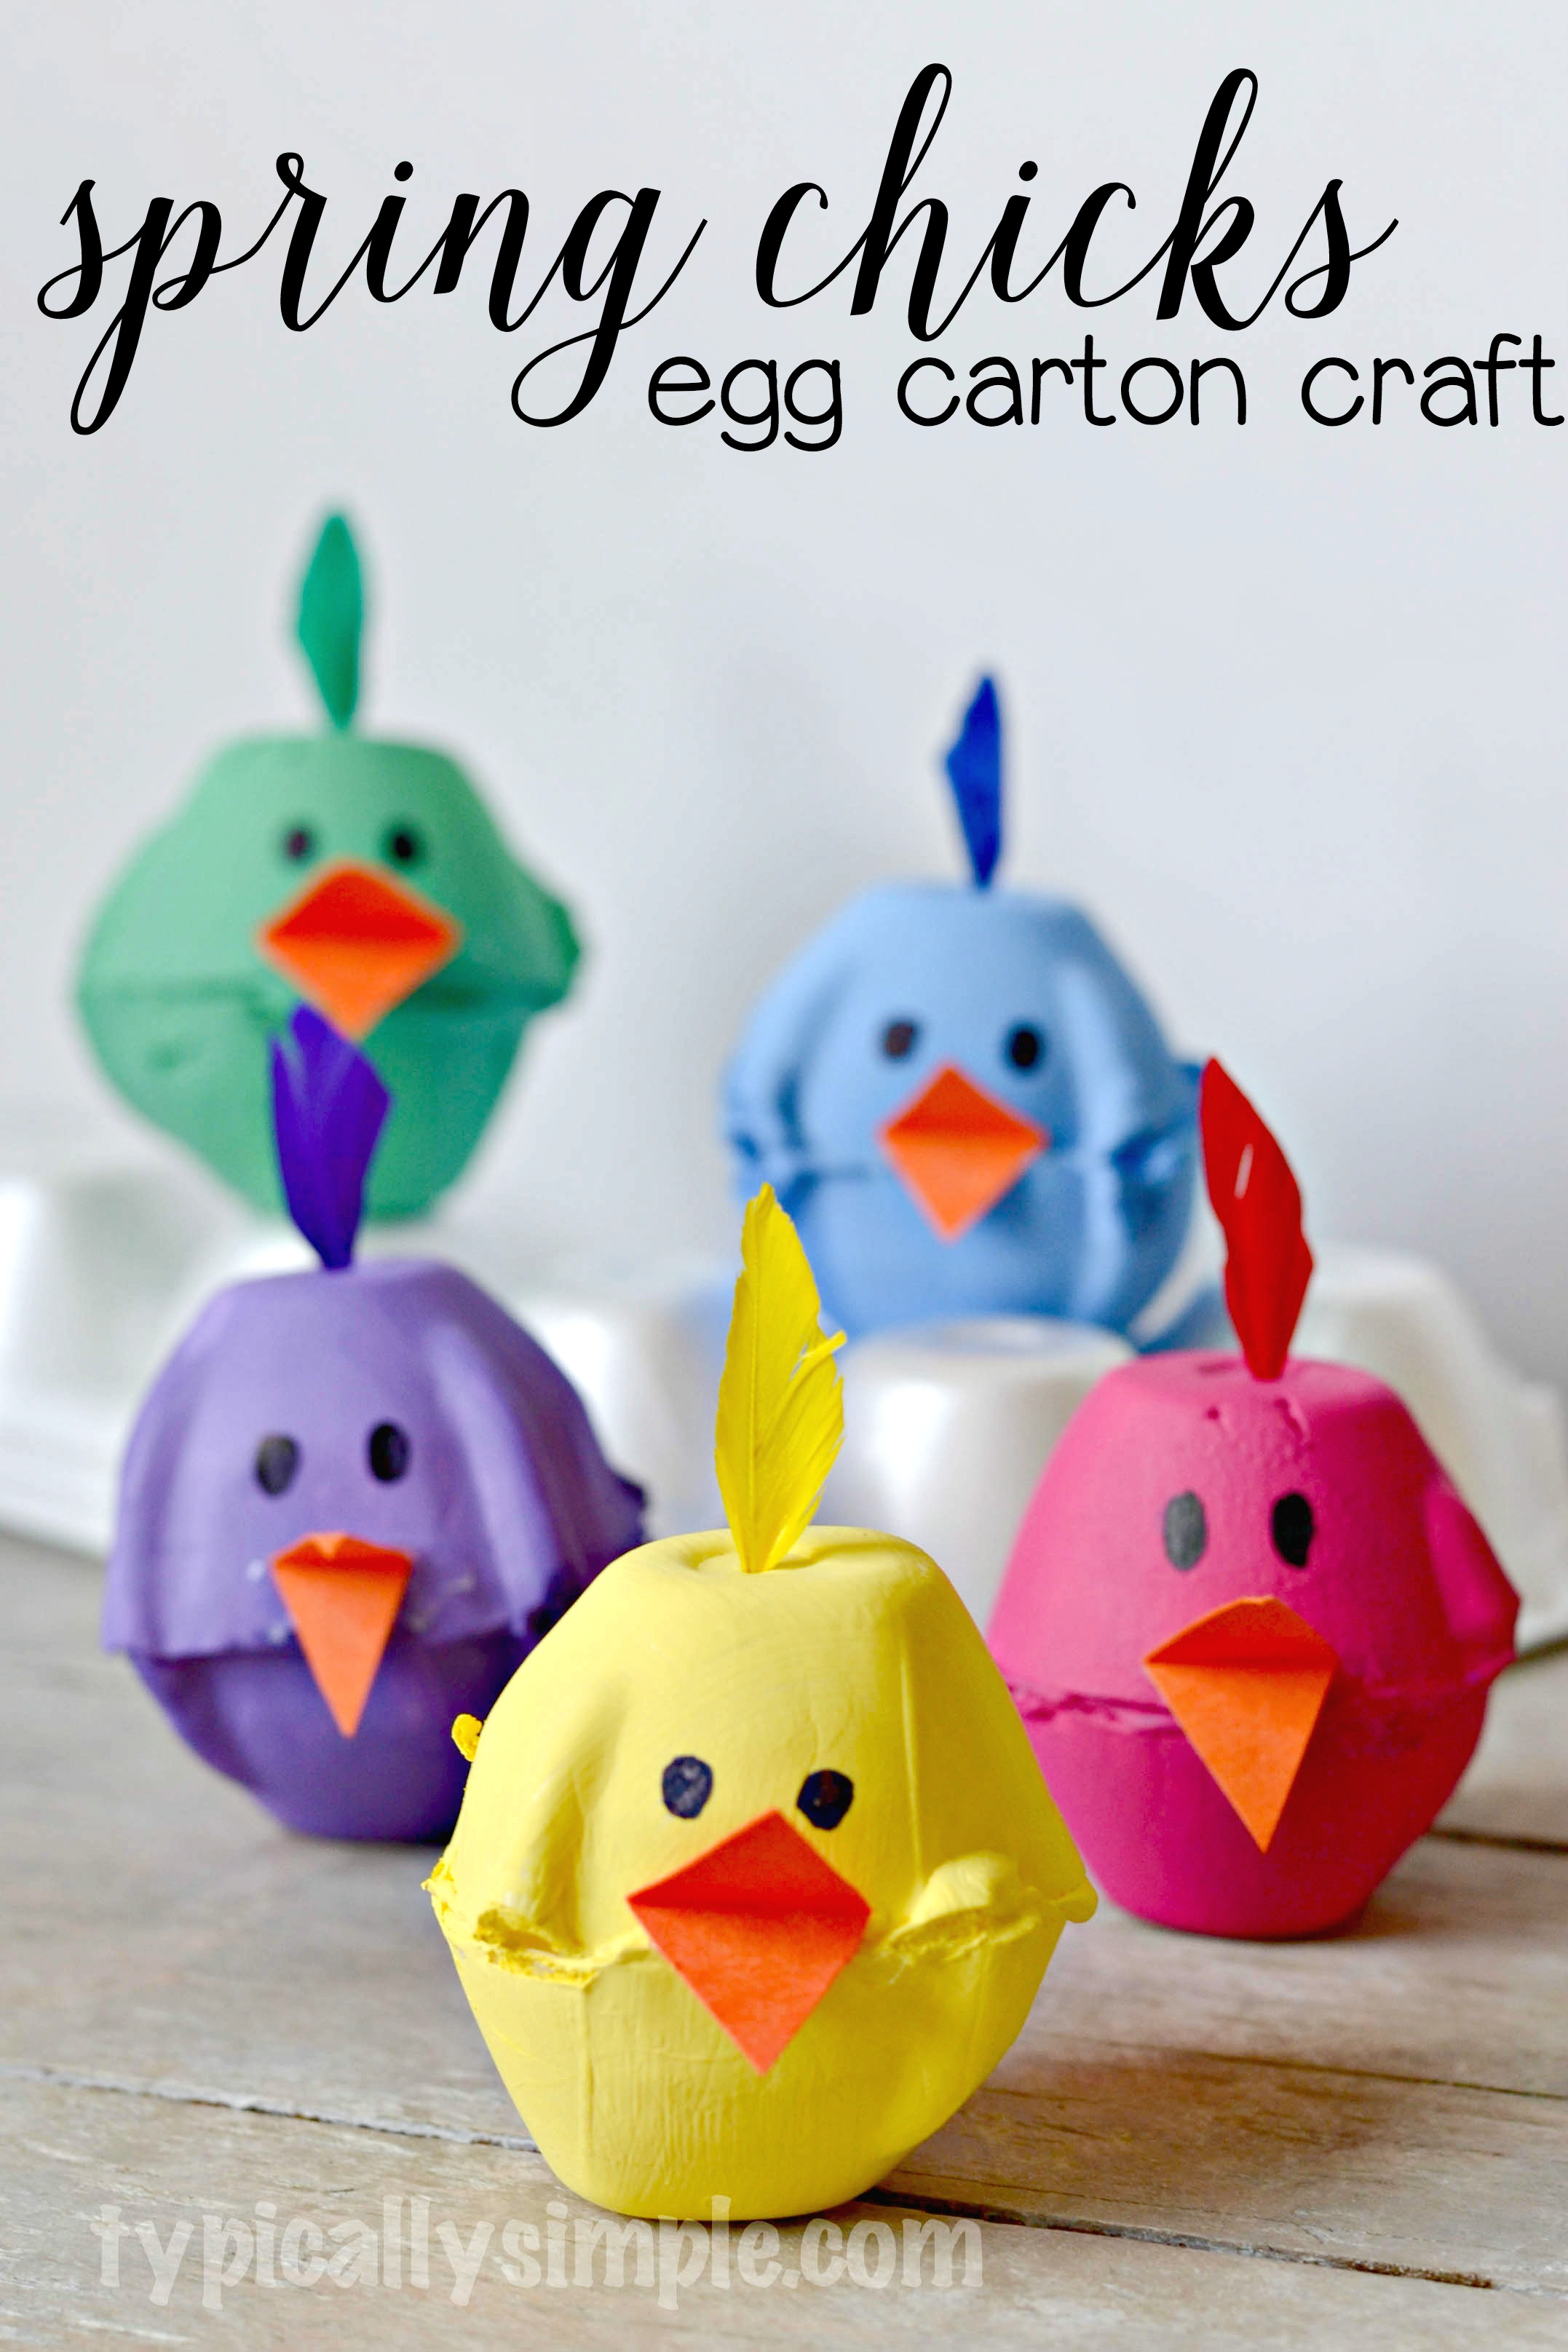 40 easter crafts for kids fun diy ideas for kid friendly easter 40 easter crafts for kids fun diy ideas for kid friendly easter activities country living negle Image collections